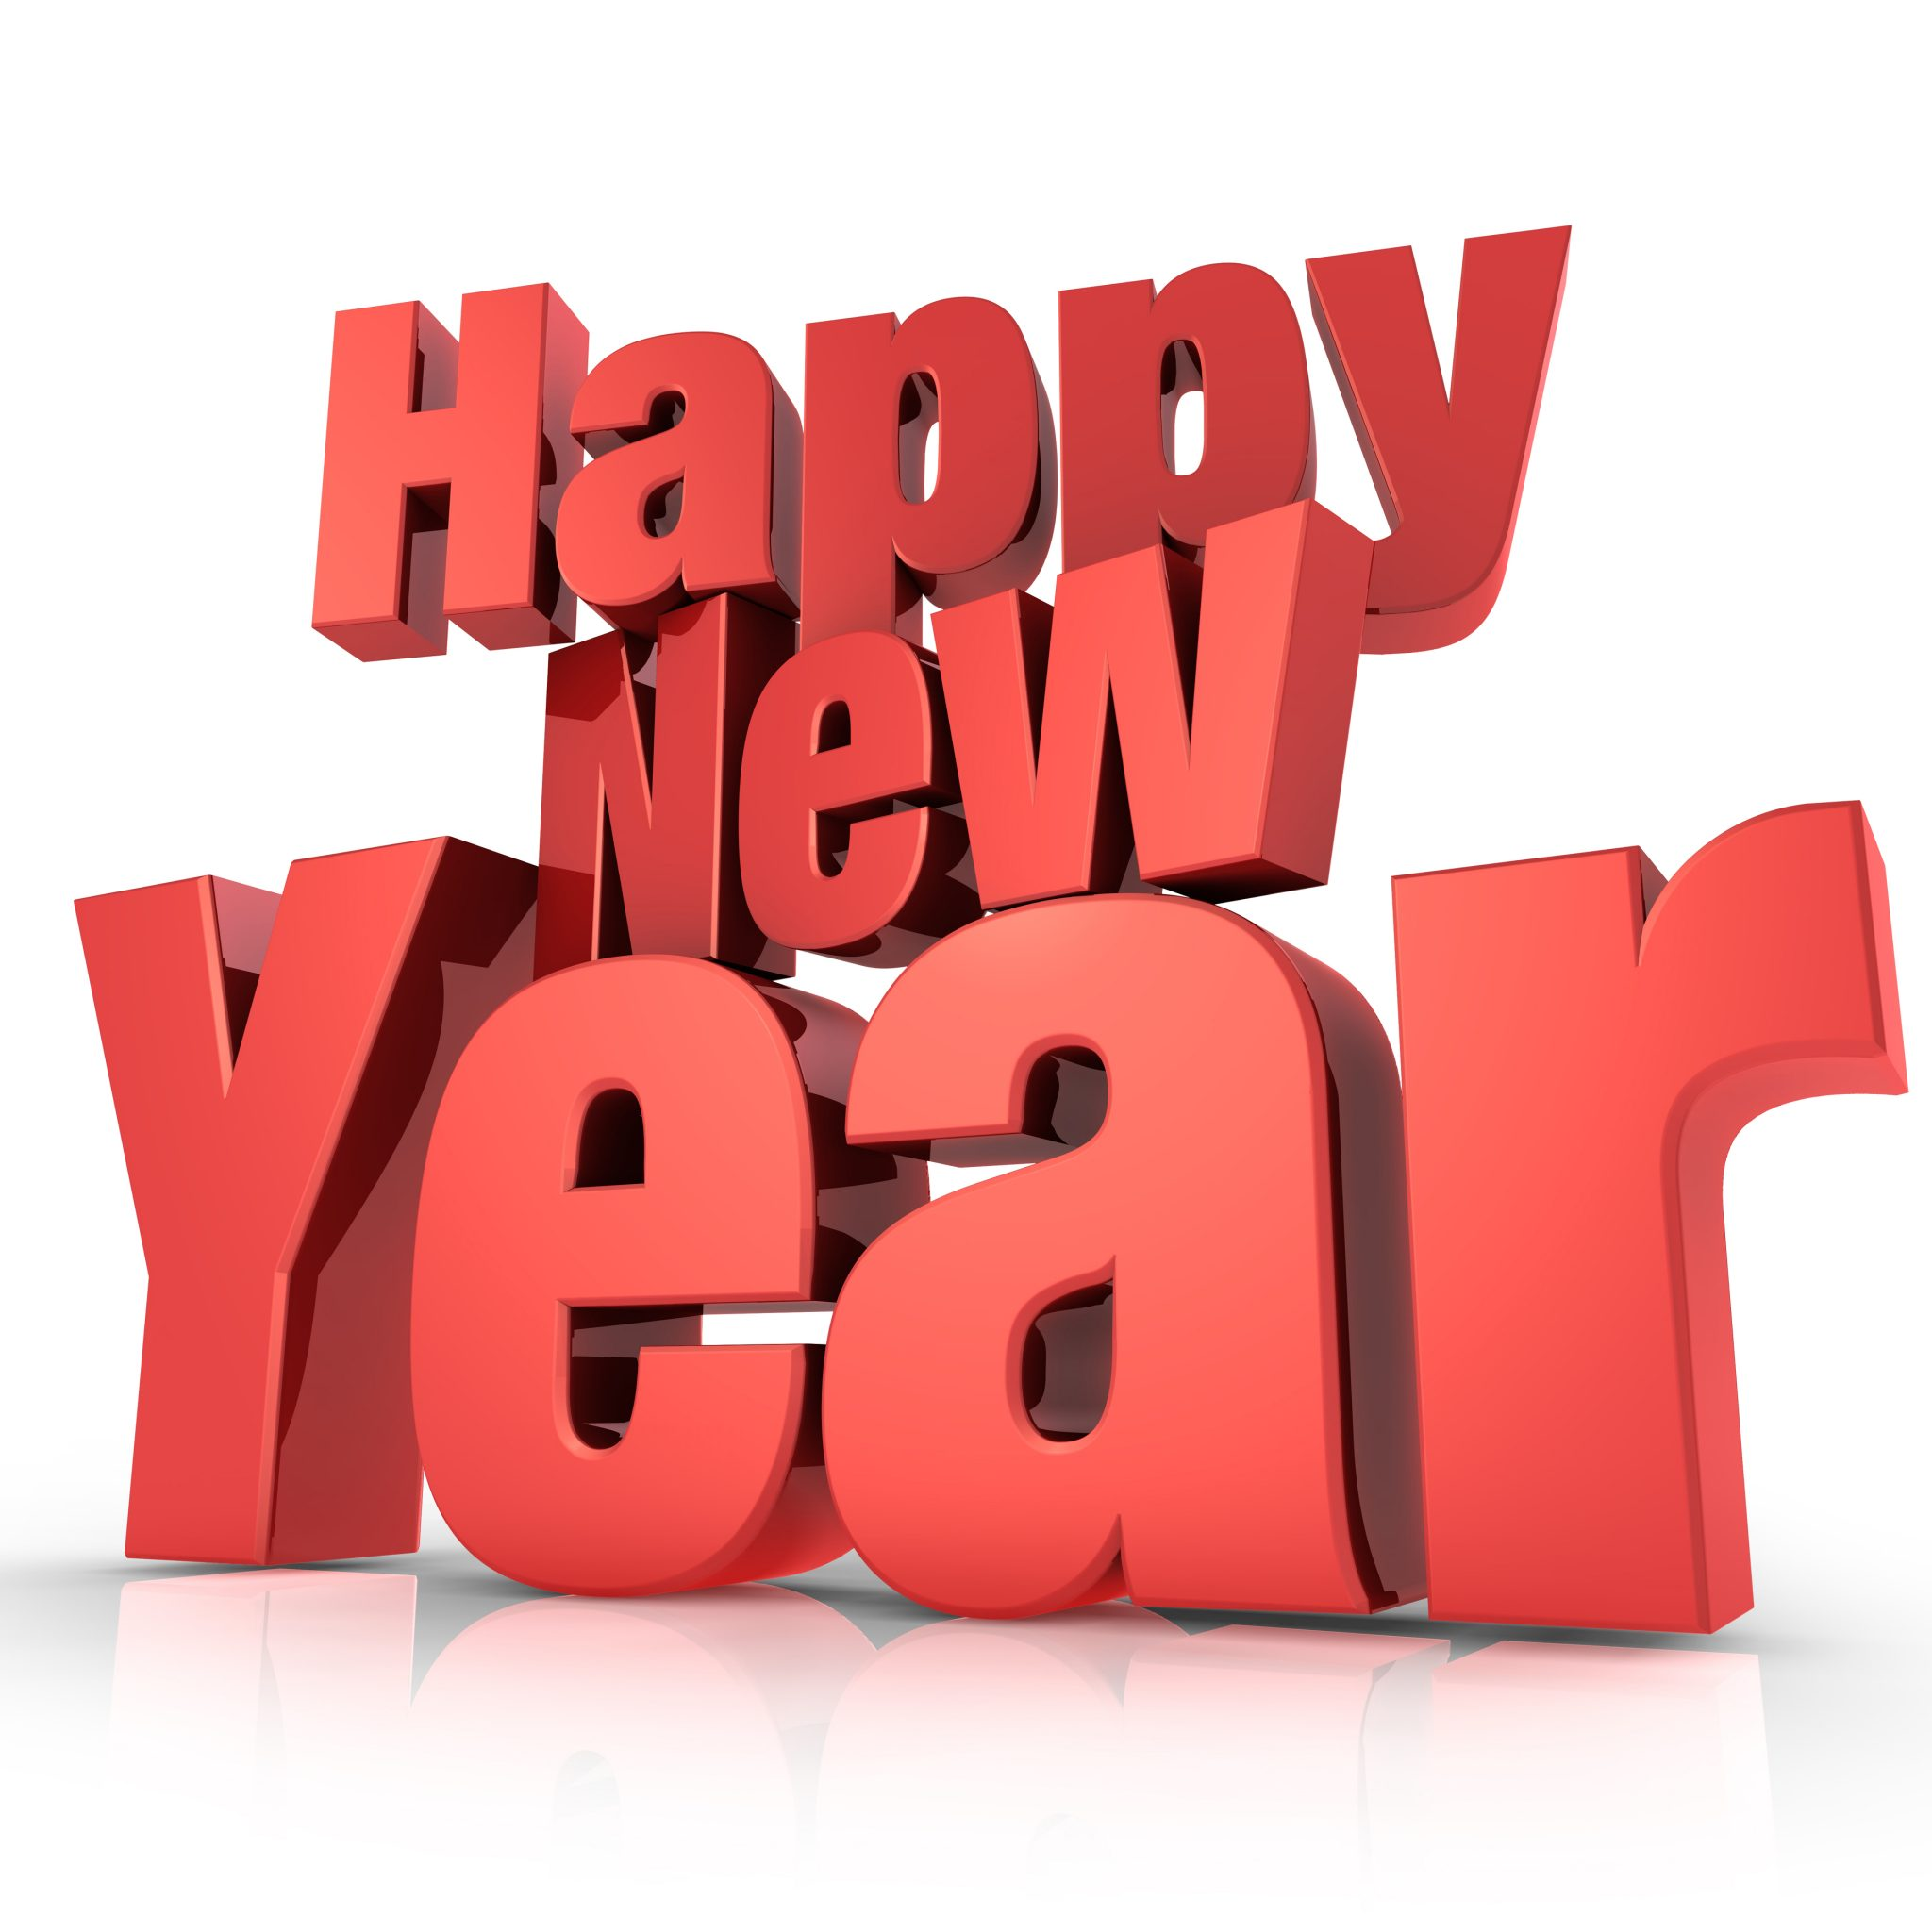 May you find all the success and prosperity you want in the new year. Happy New Year from Dan Hoff Marketing